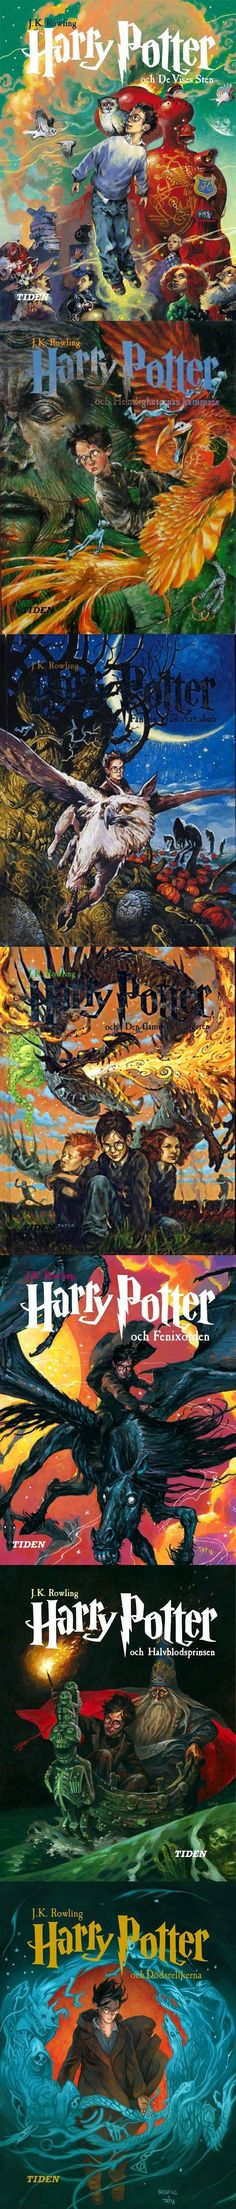 Swedish covers for Harry Potter <3